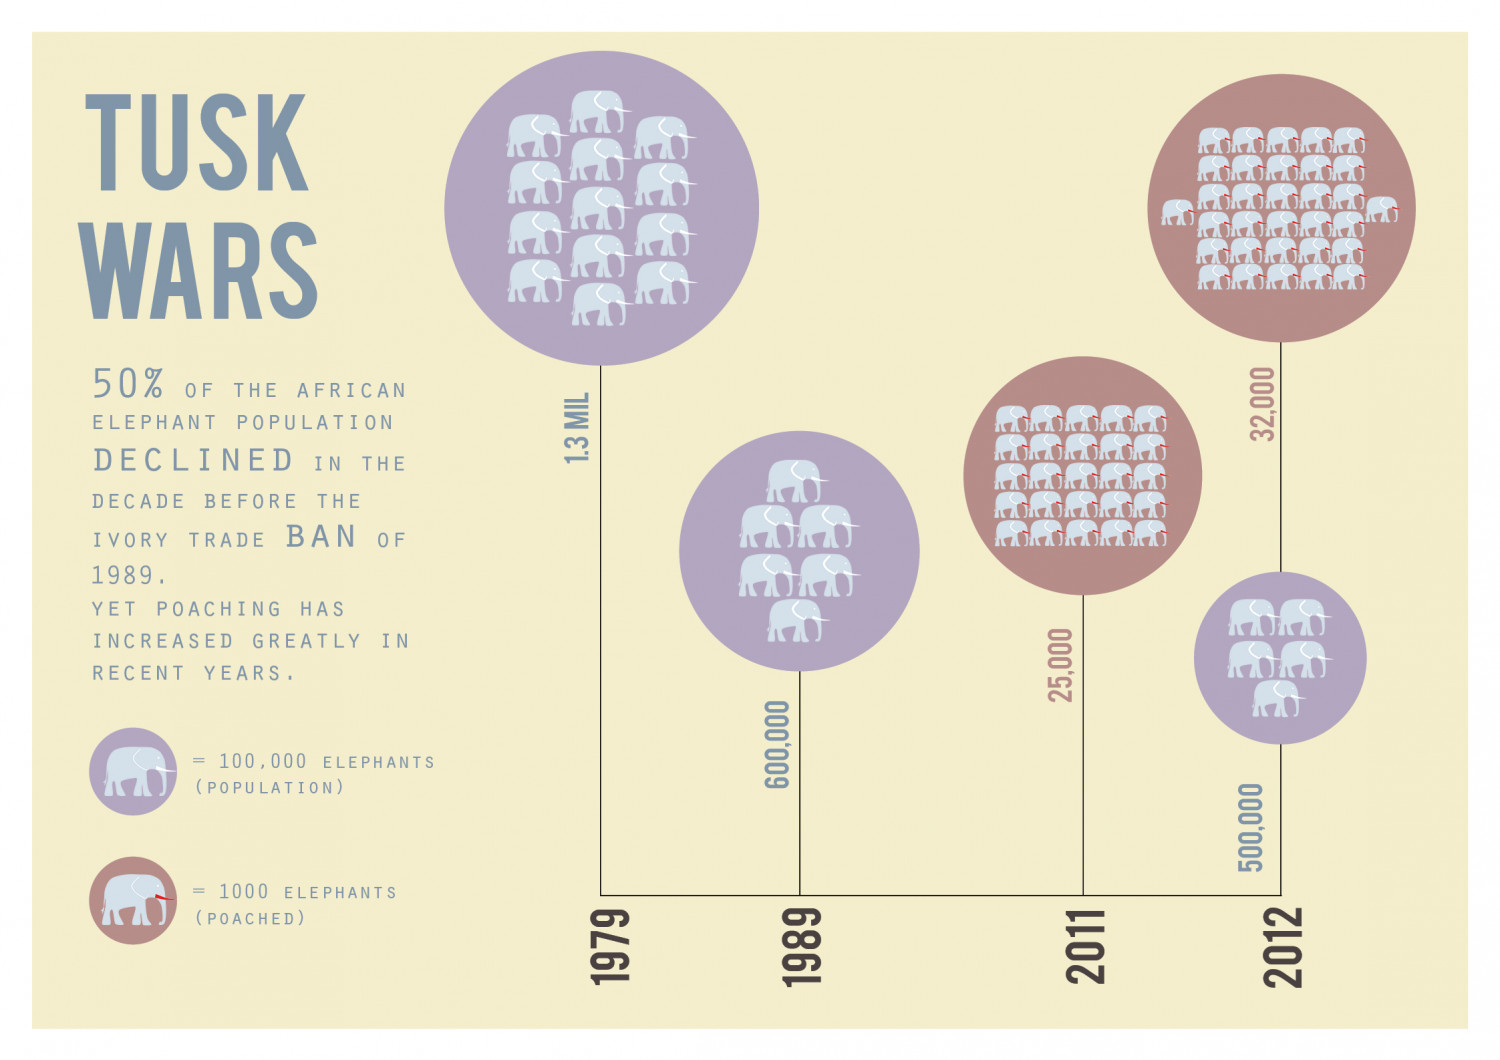 Tusk Wars Infographic